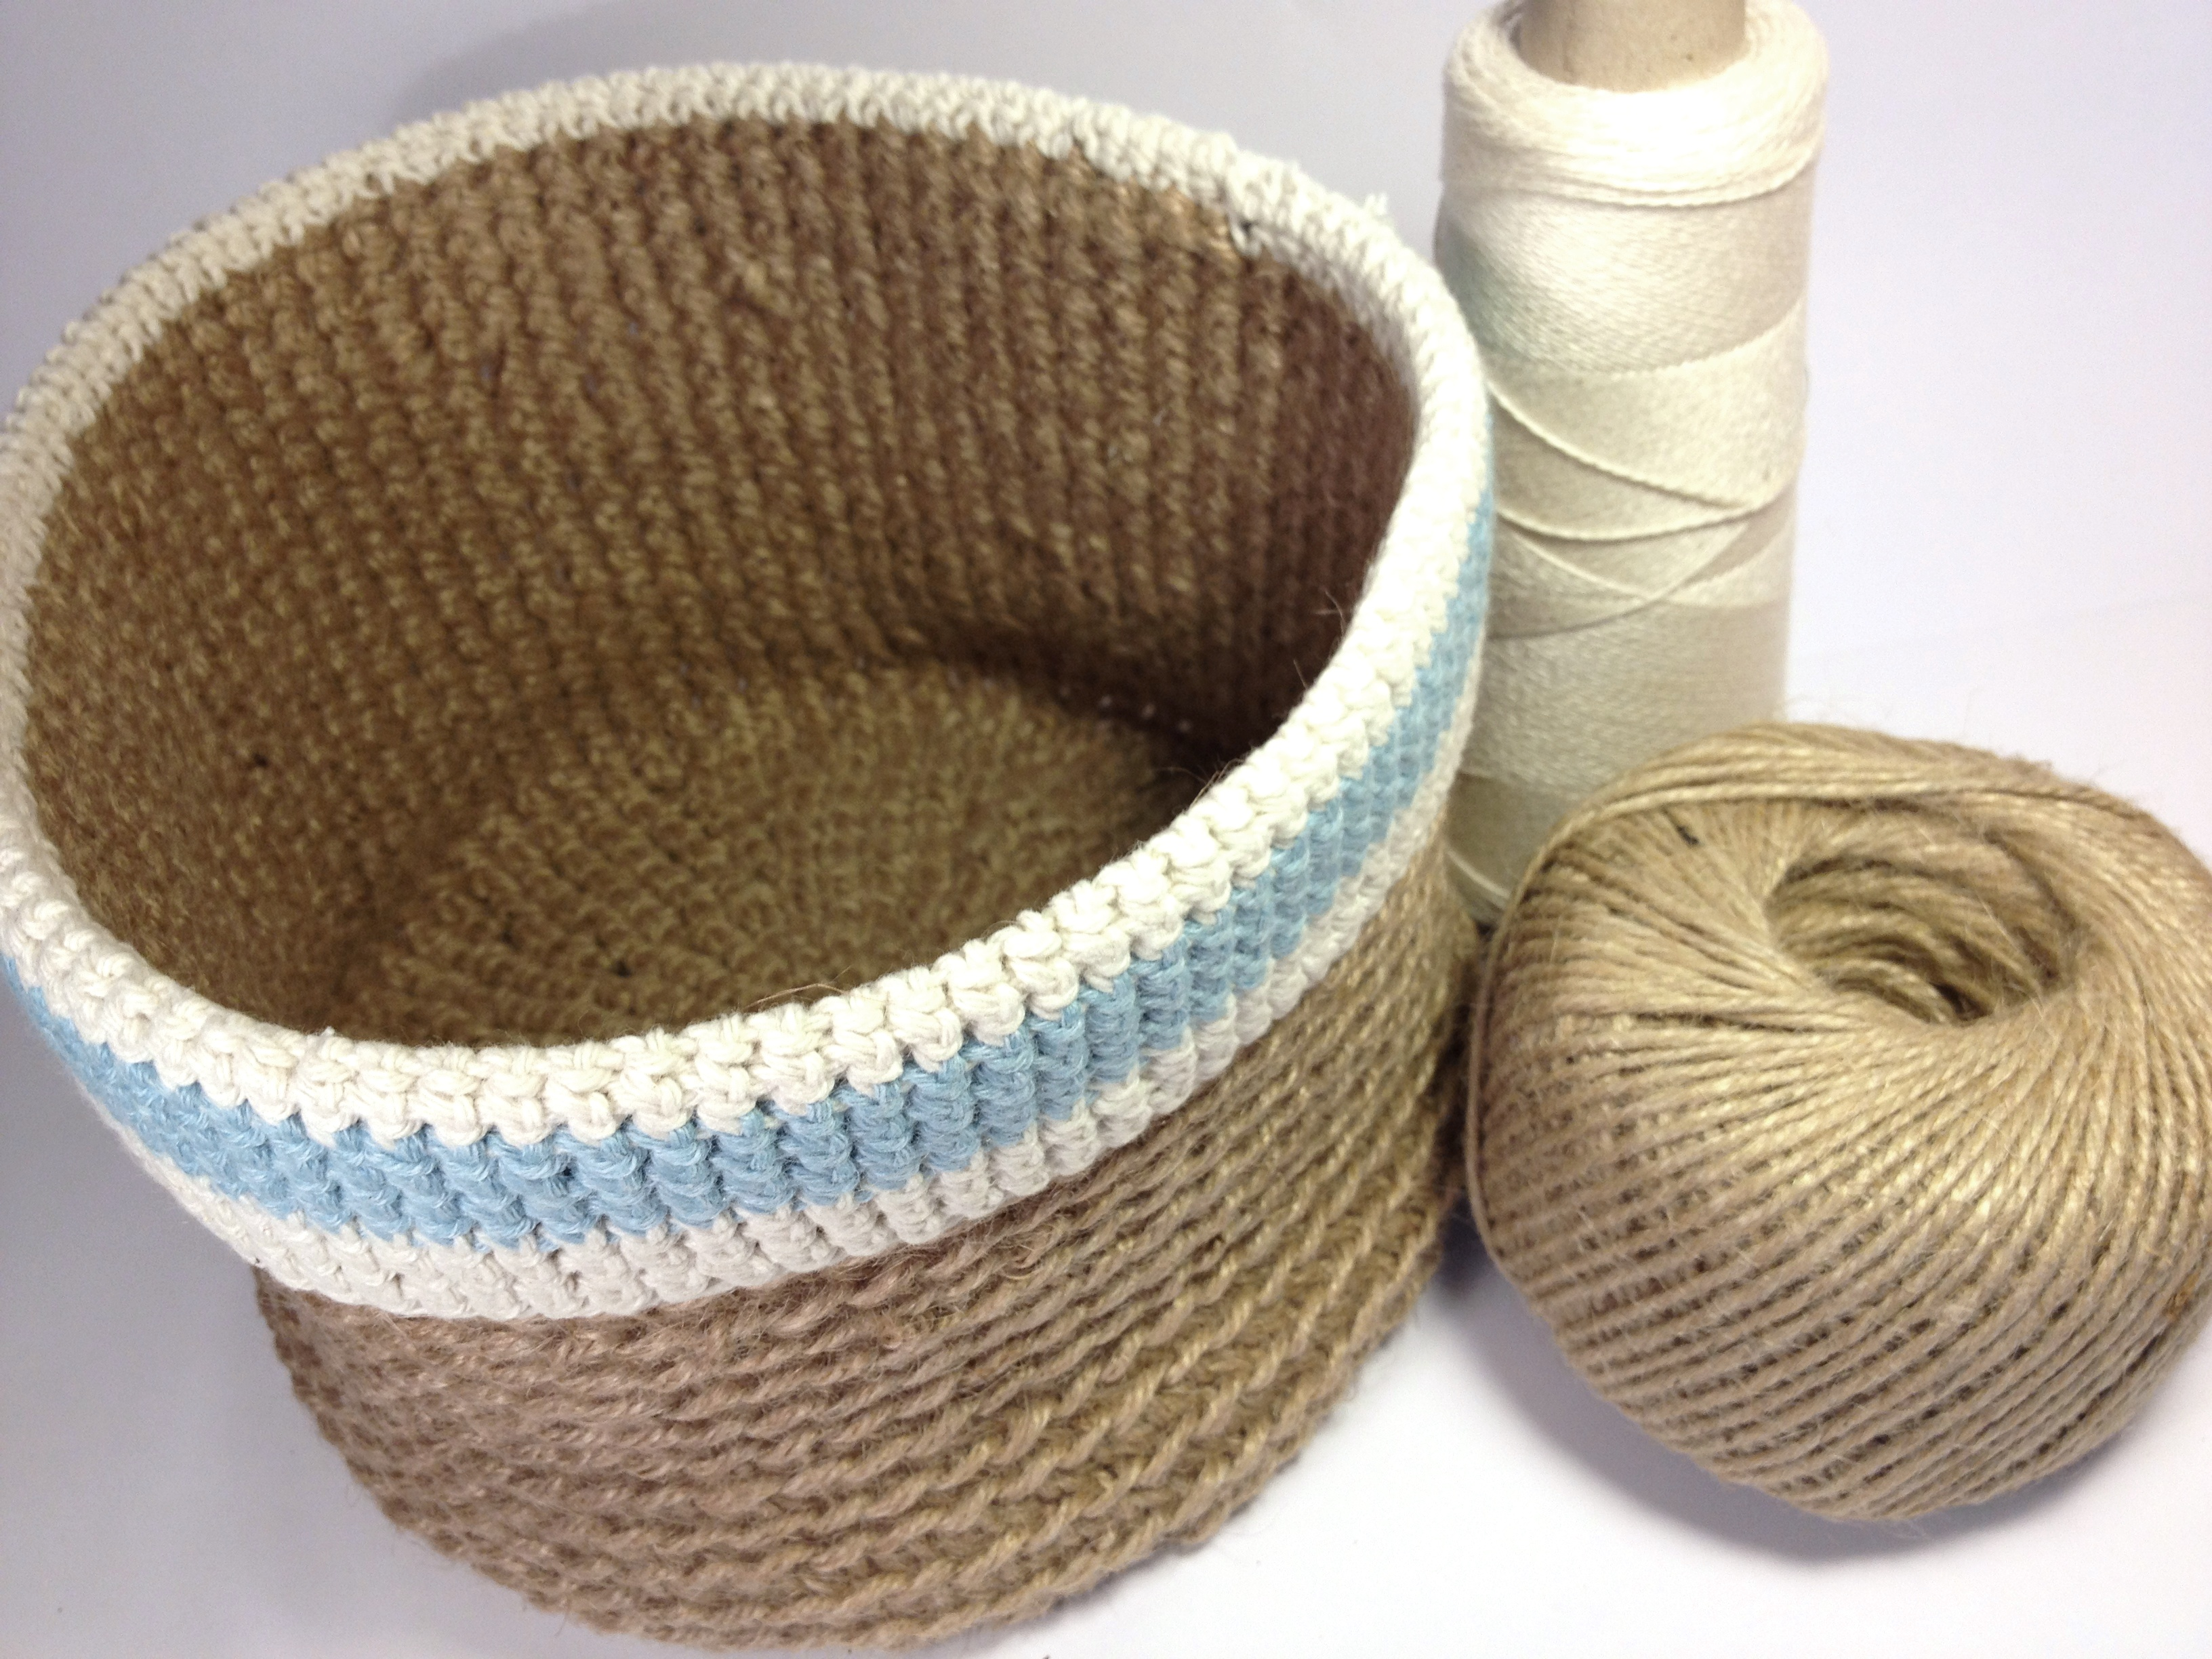 Crocheting Baskets : Crochet baskets now on Folksy! Love, Lucie